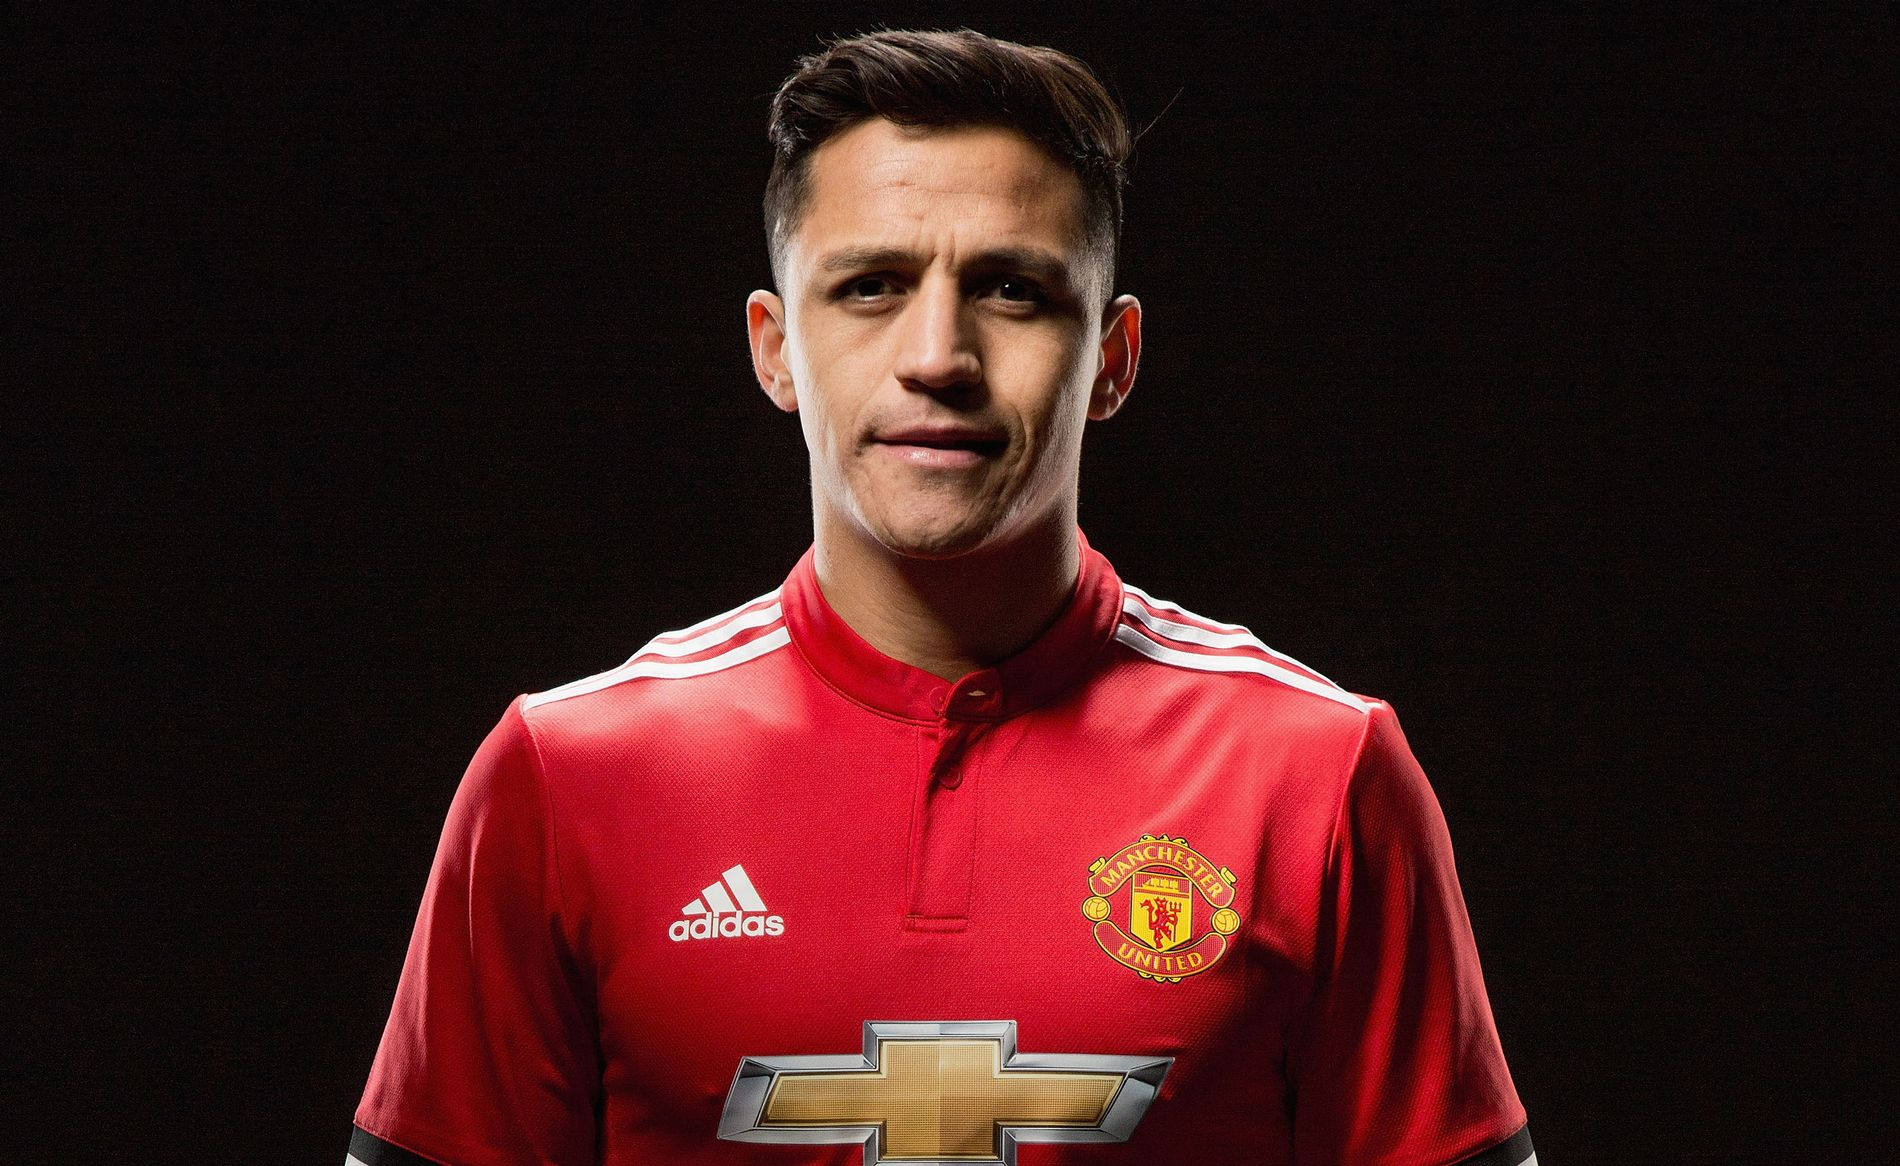 Manchester United Animated Wallpapers Alexis Sanchez Wallpapers